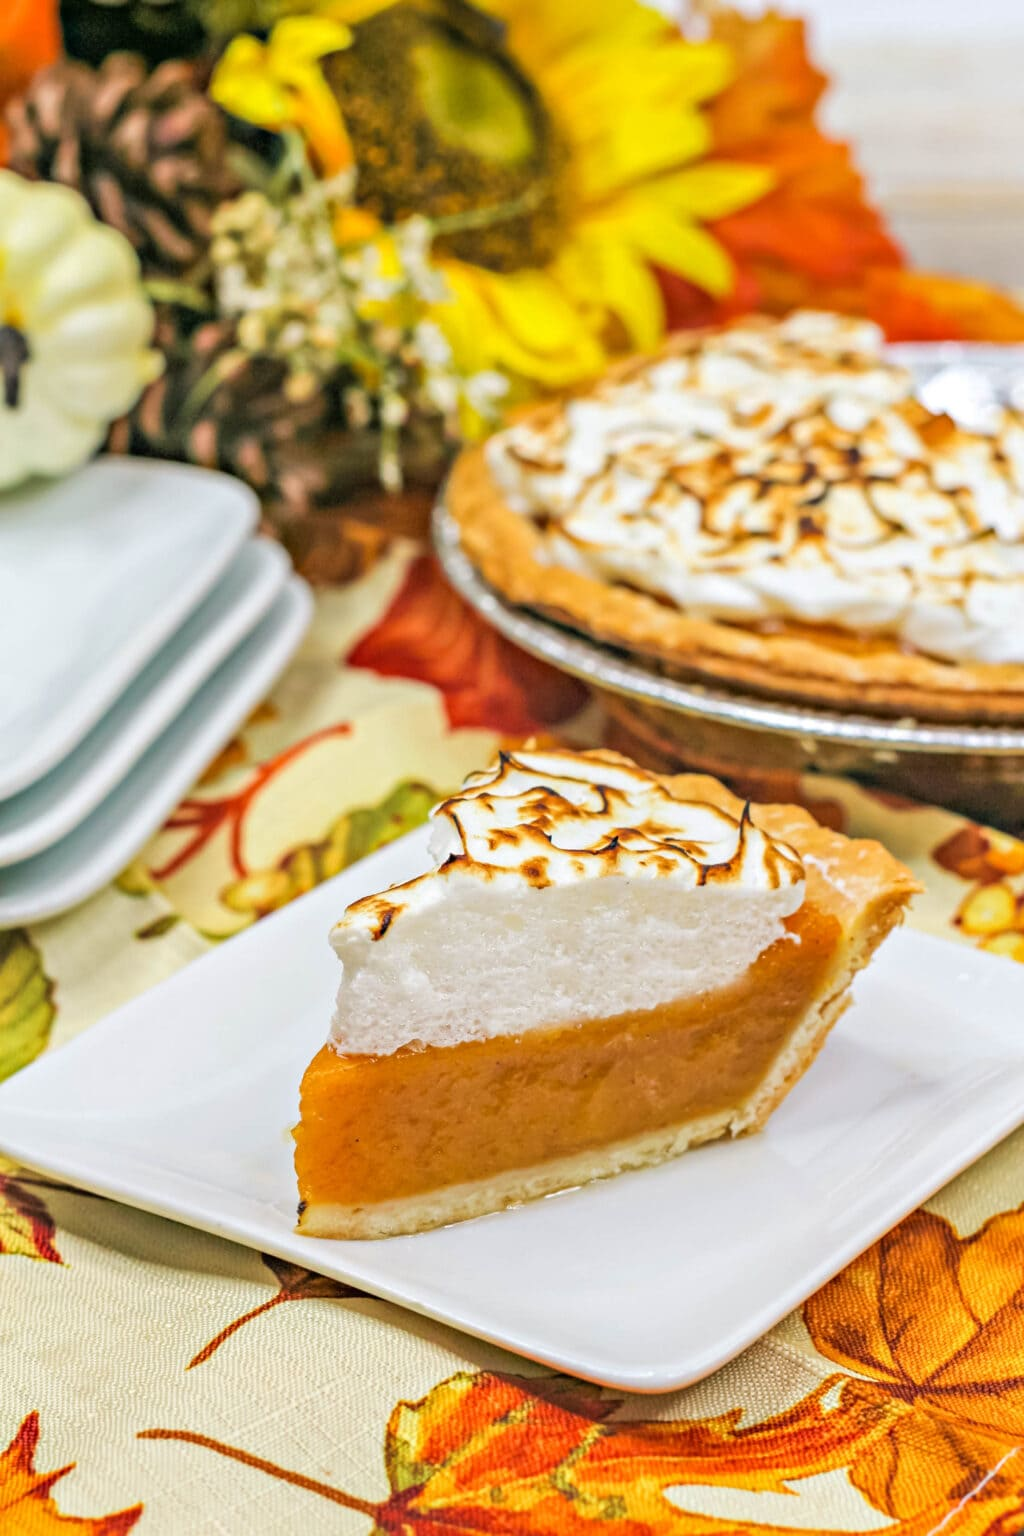 slice of sweet potato pie with marshmallow meringue topping